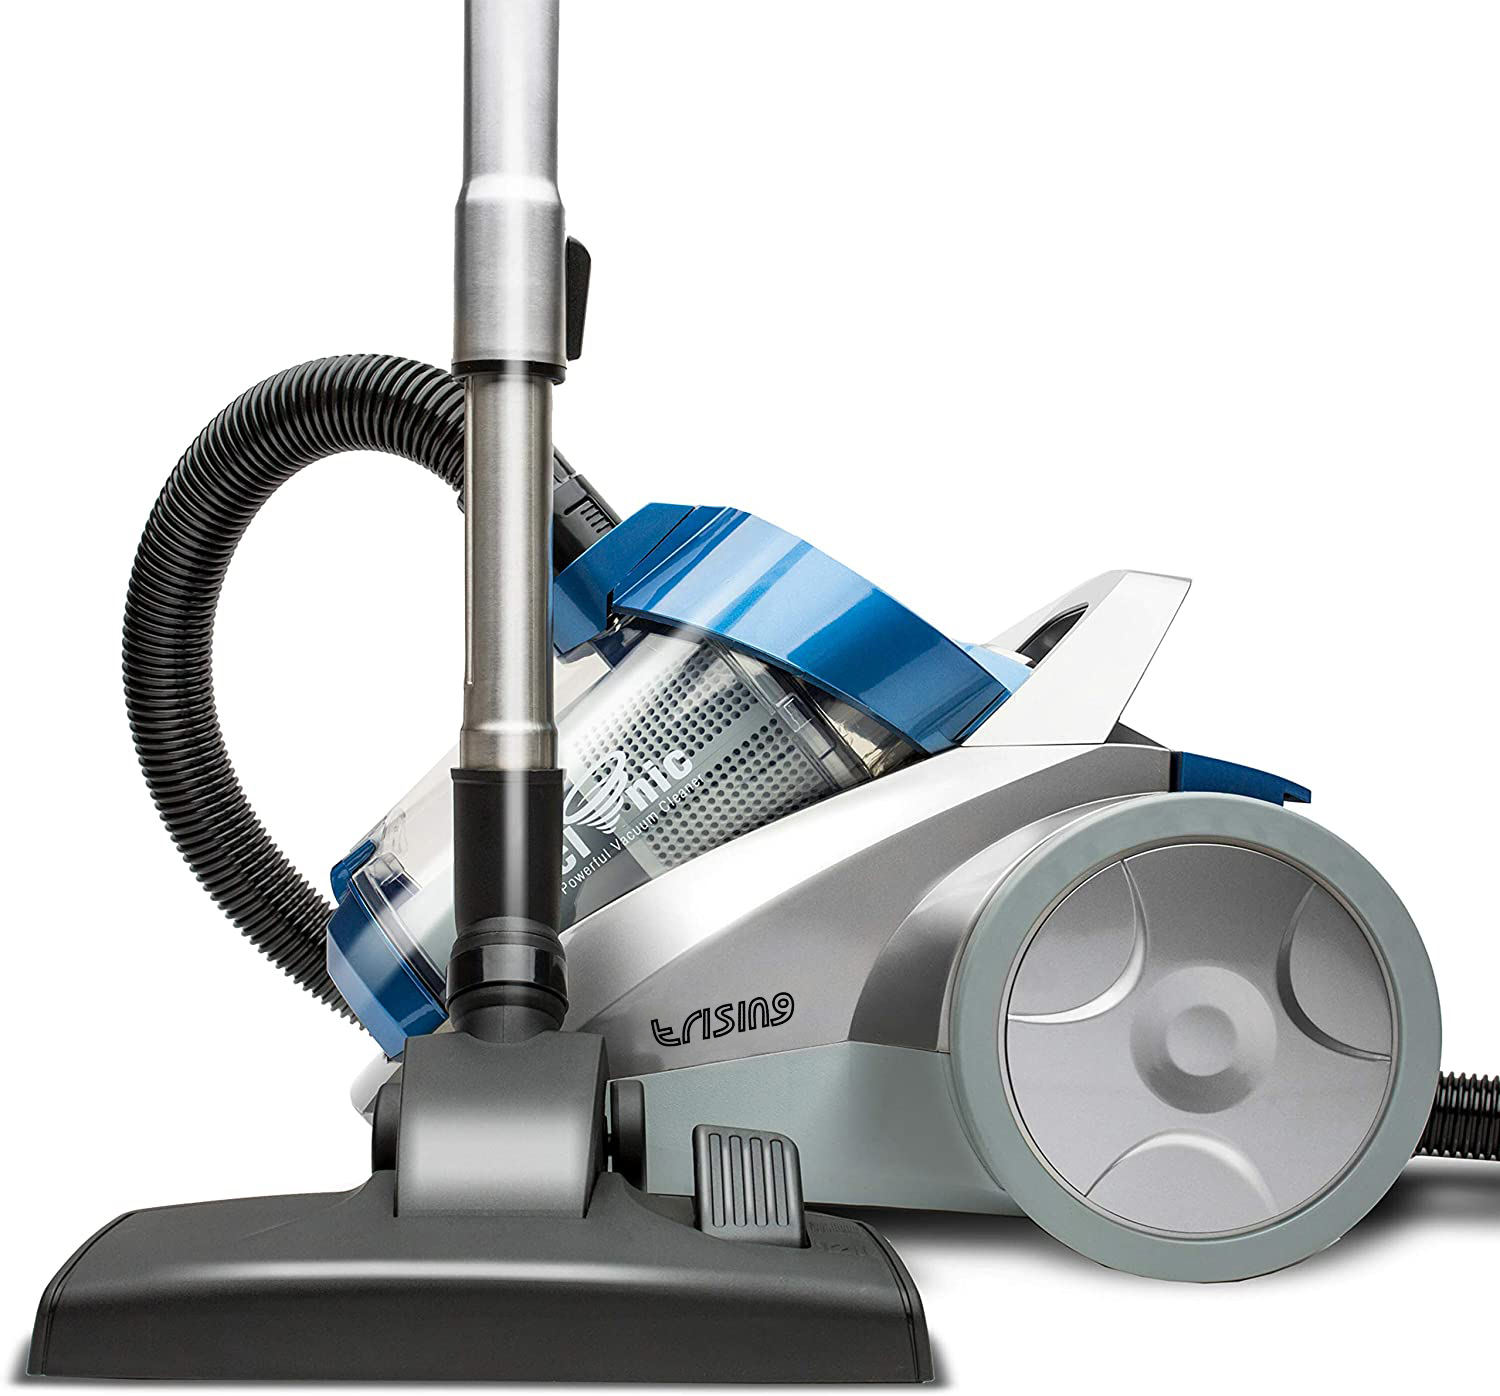 E-rising canister vacuum cleaner 4.0L cyclone HEPA Filter stainless steel 5m cable corded 700W eco motor vacuum 18kpa